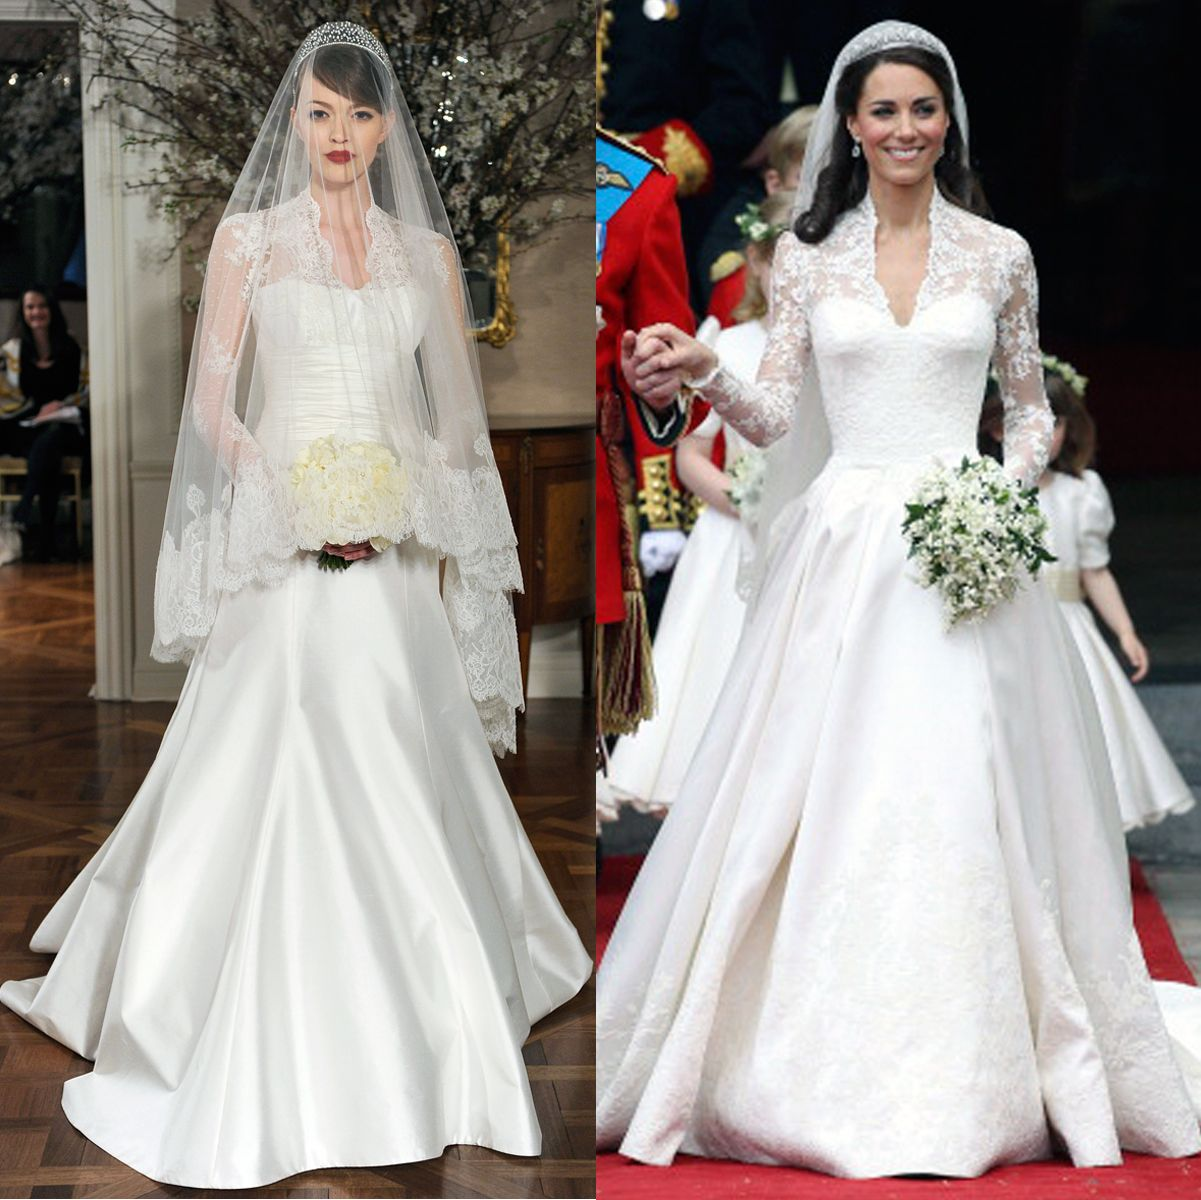 British Royal Wedding Gowns: Three Royal Wedding Dresses Predicted By Romona Keveža